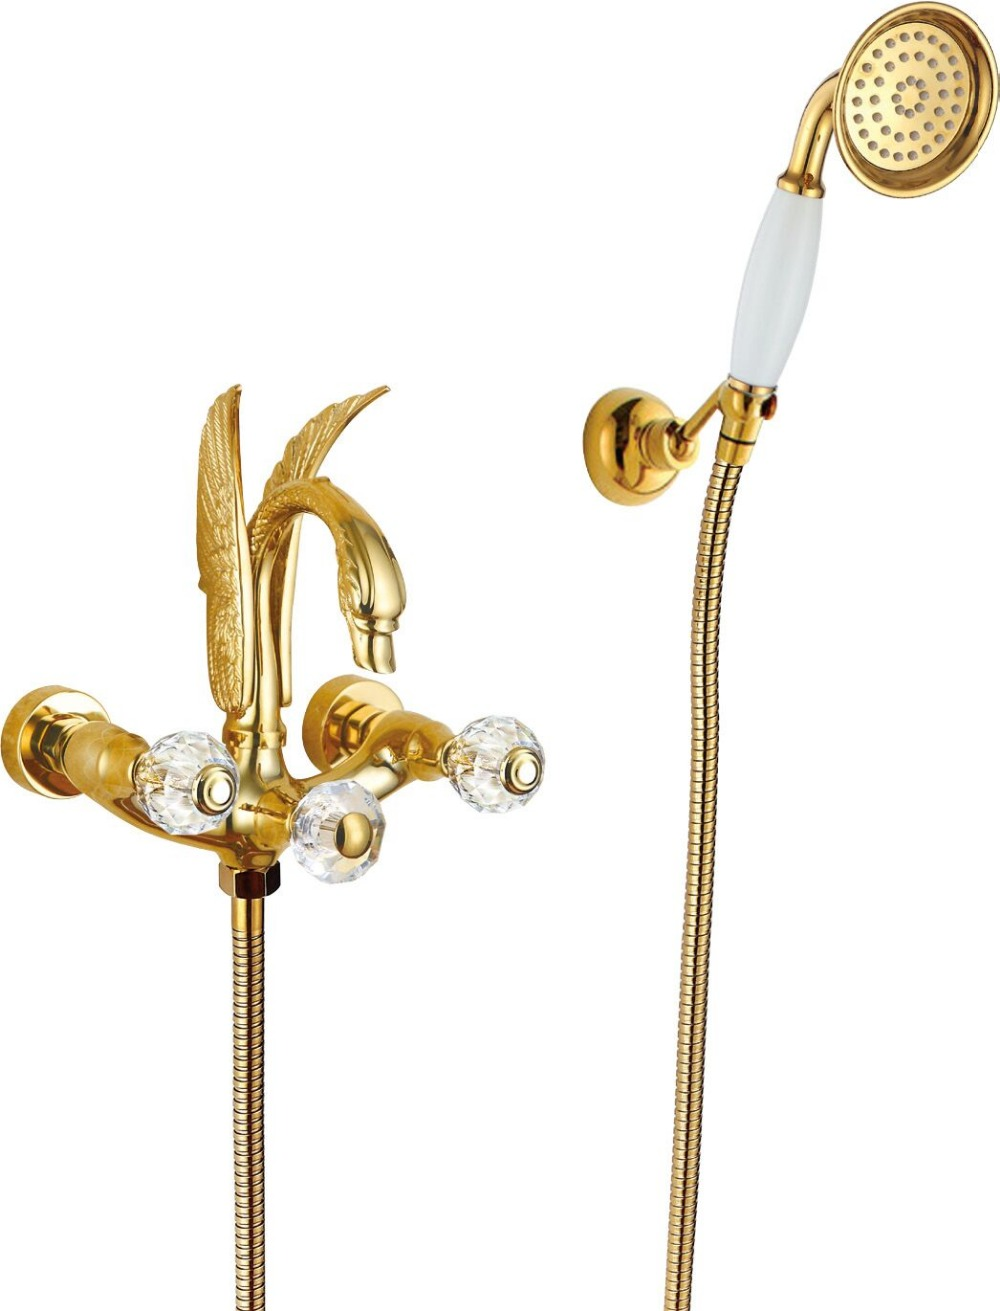 FREE SHIP wall mounted Gold finish PVD SWAN Bath shower Bathtub Faucet  WITH Hand Shower Crystal (or swan )handles free shipping polished chrome finish new wall mounted waterfall bathroom bathtub handheld shower tap mixer faucet yt 5333